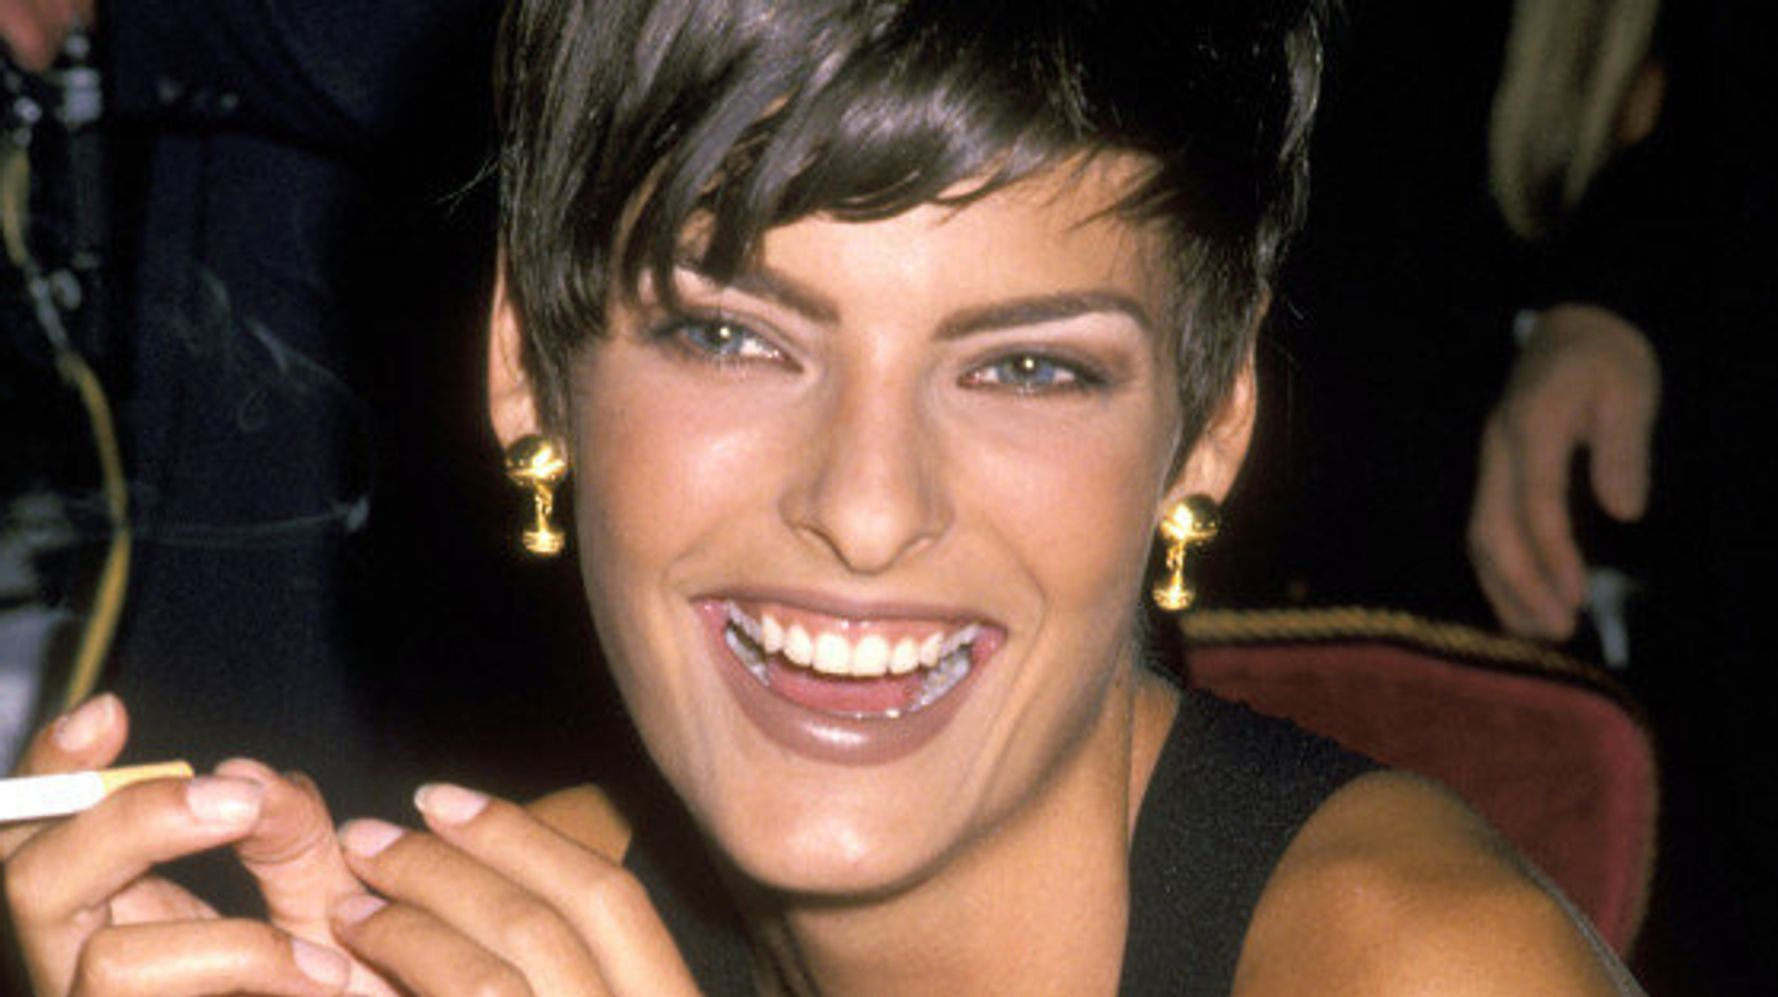 Linda Evangelista Almost Quit Modelling Thanks To Unsettling Incident - Huffington Post Canada